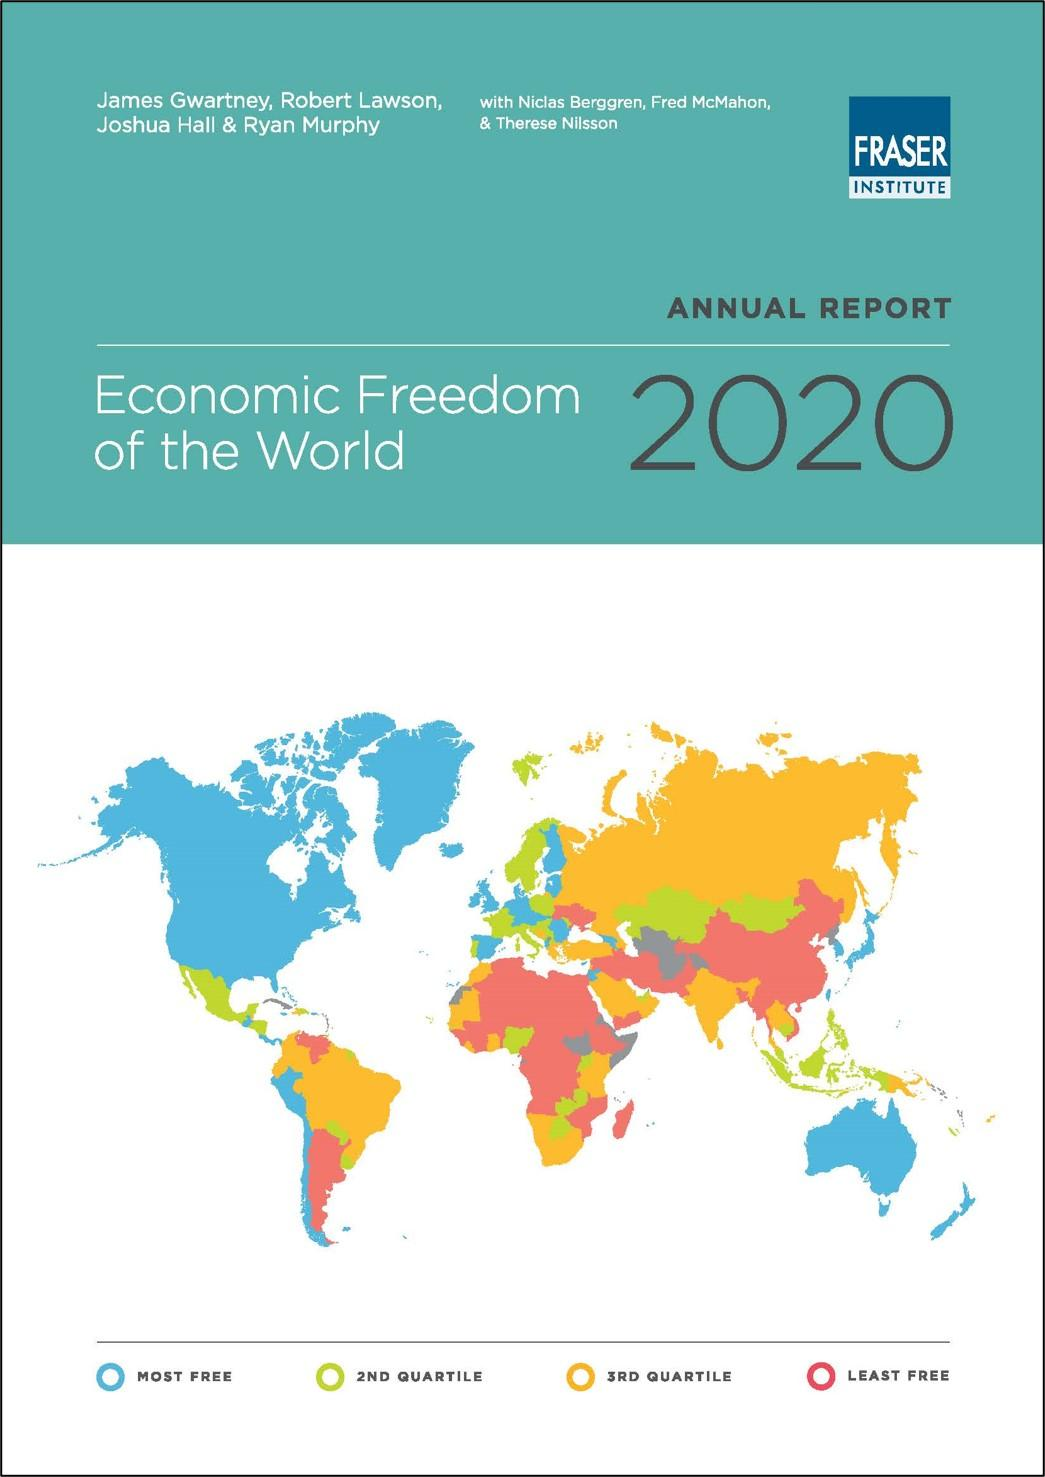 Economic Freedom of the World 2020